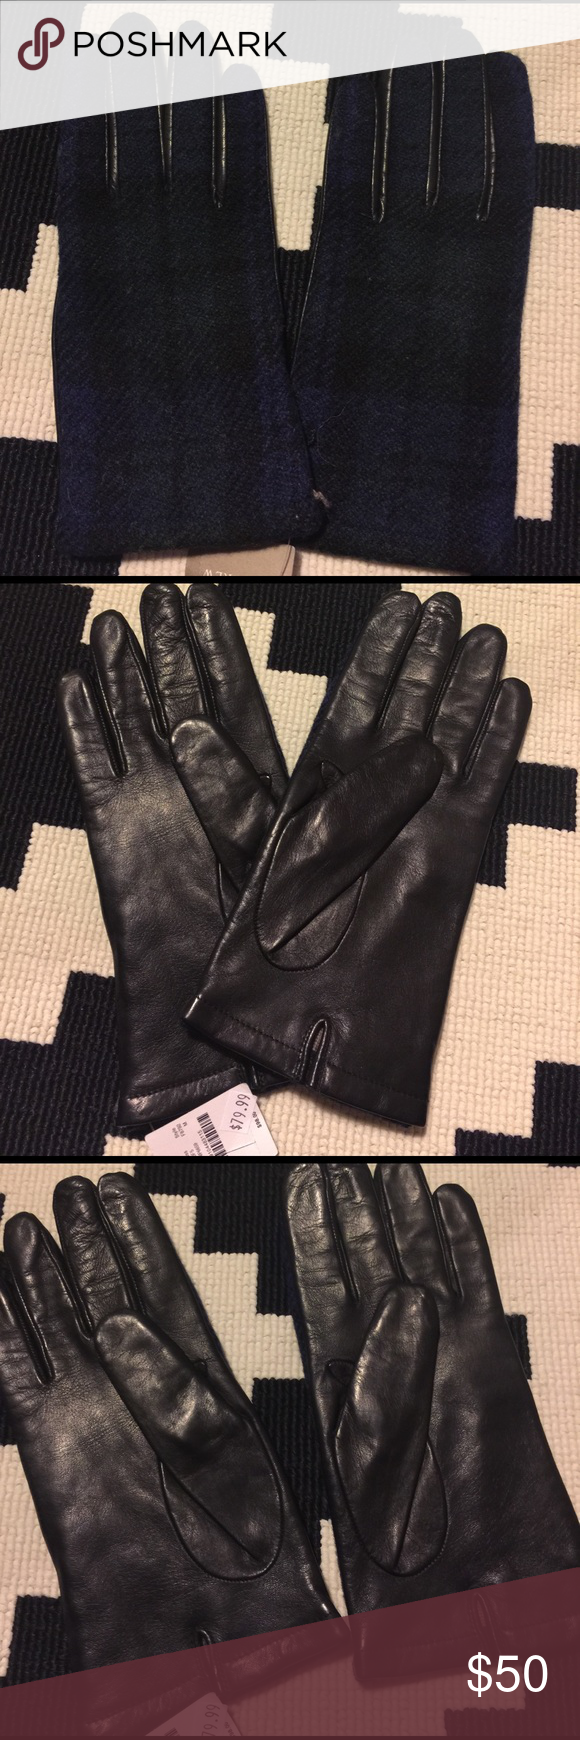 133c02dbd04 J Crew black watch   leather gloves Sz m These leather gloves are lined  completely in